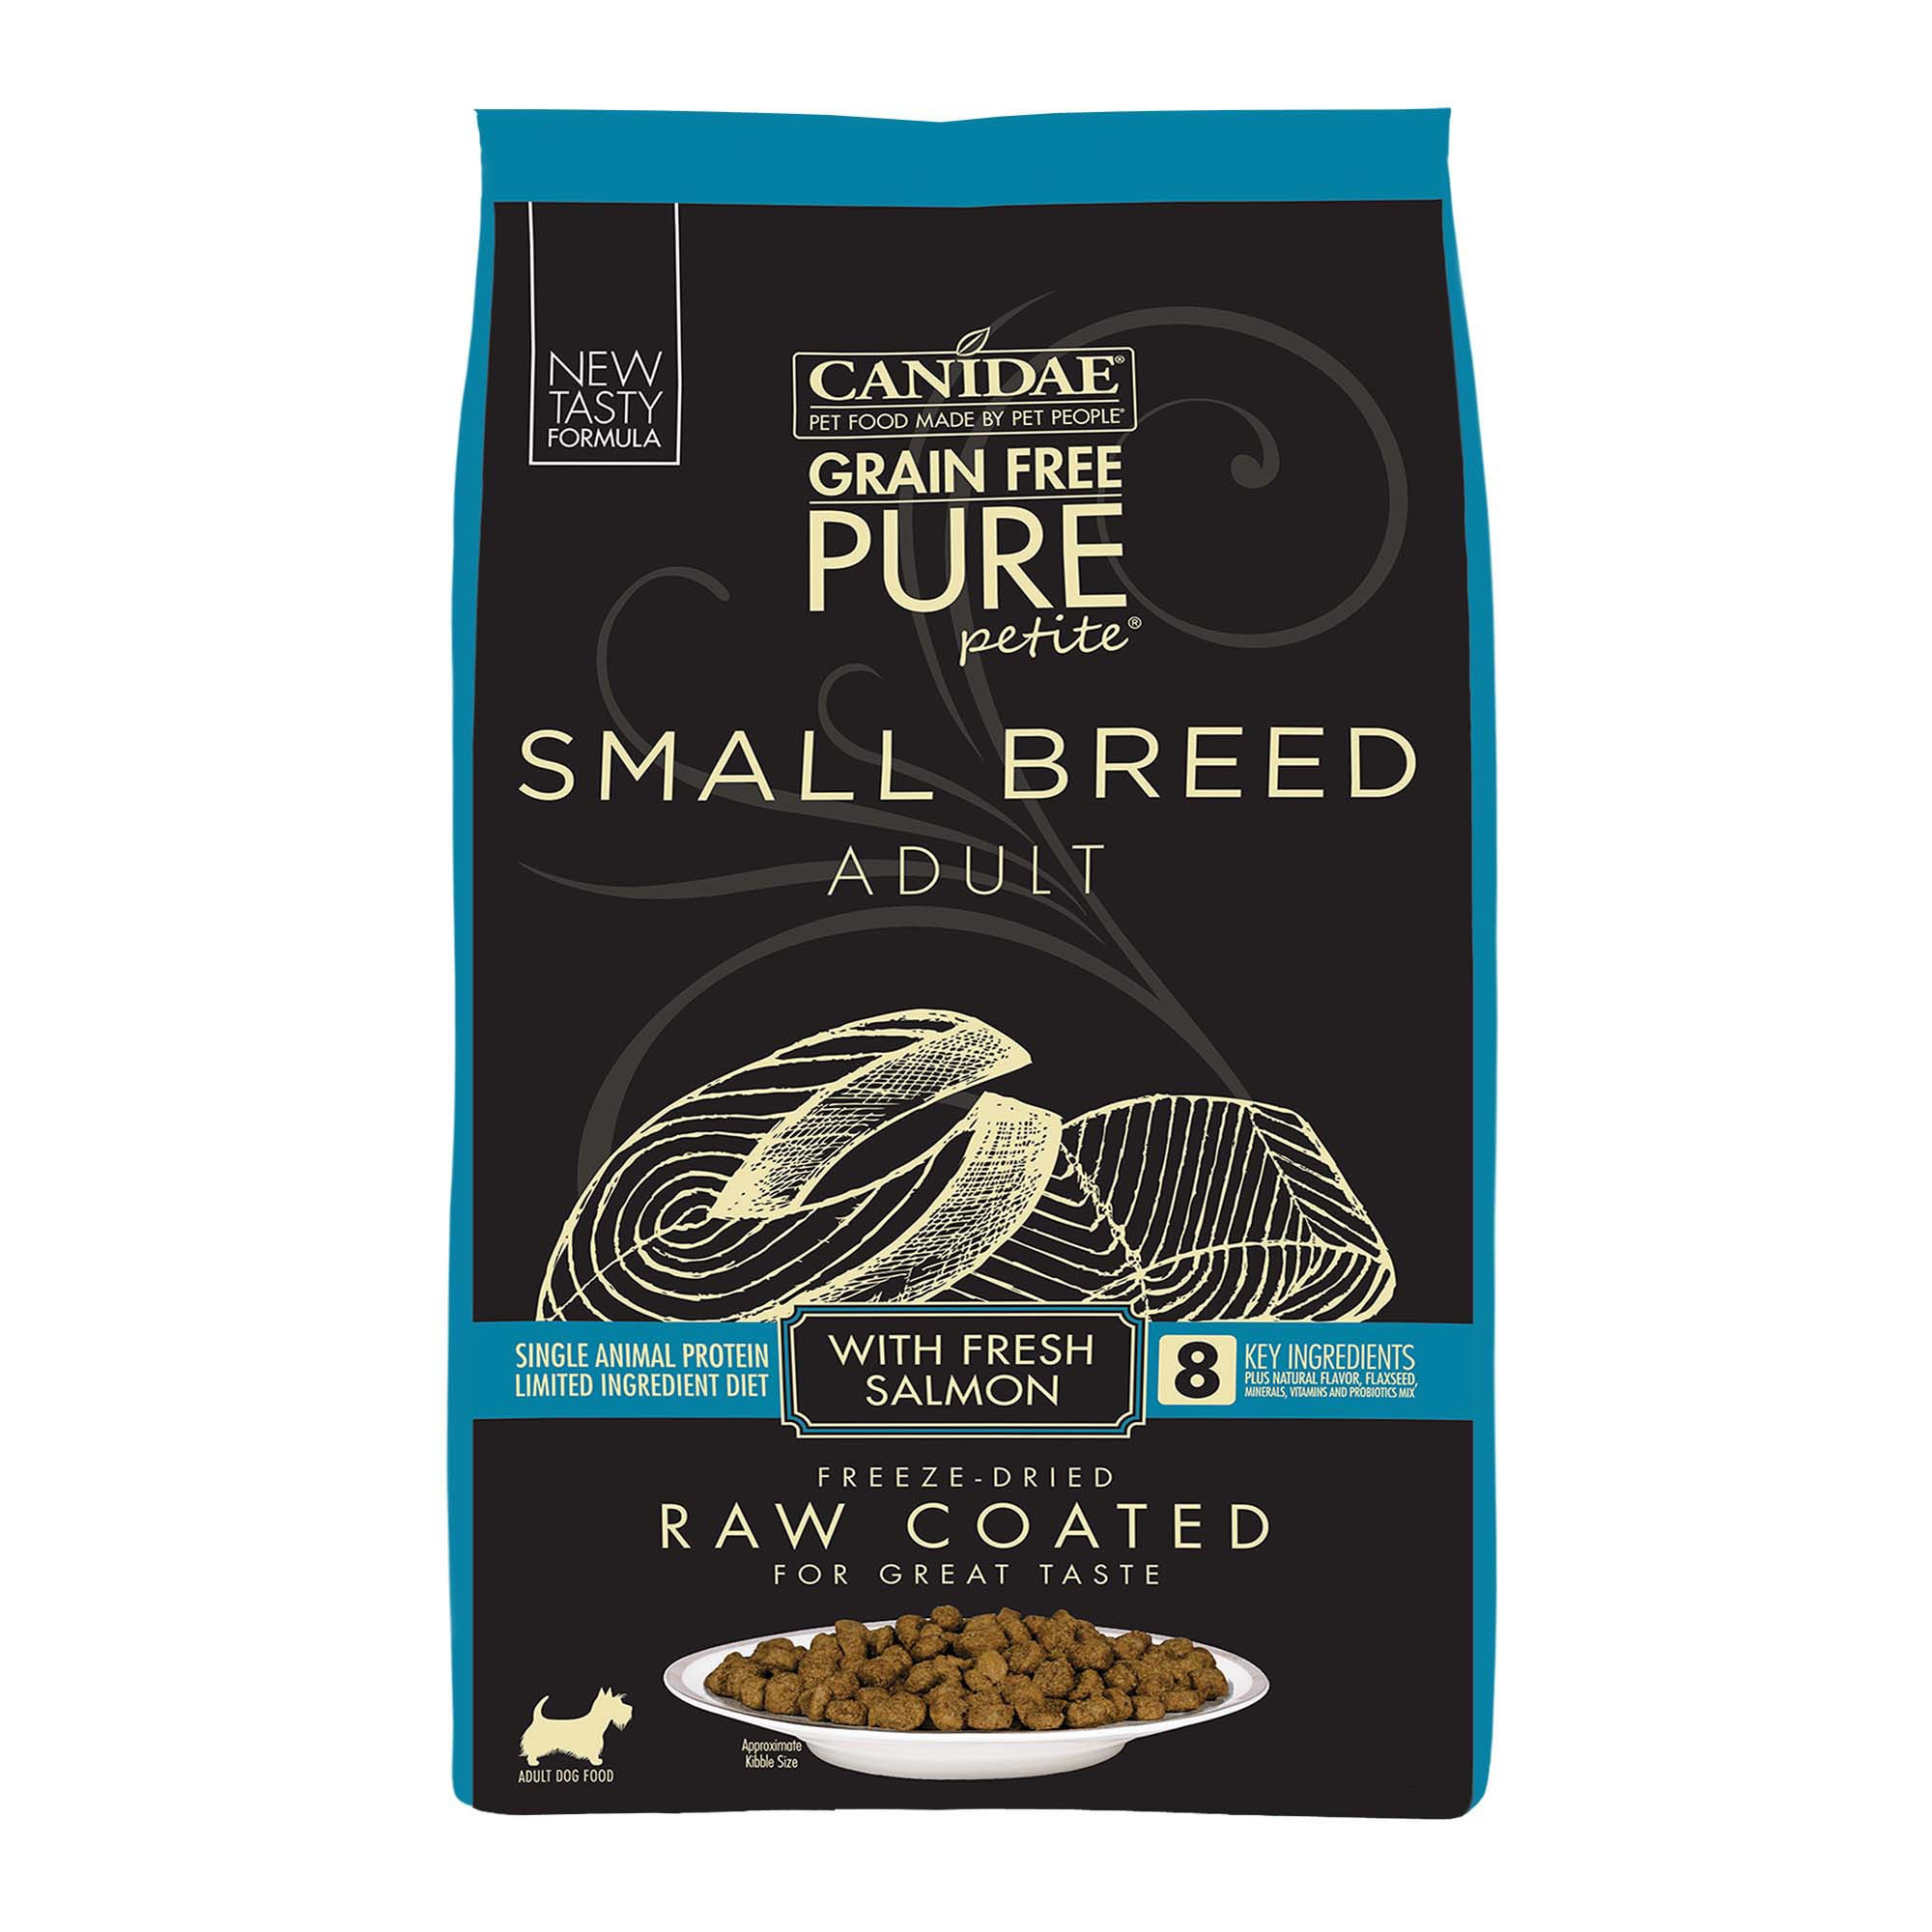 Canidae PURE Grain Free Petite Small Breed Limited Ingredient Diet Raw Coated with Fresh Salmon Dry Dog Food